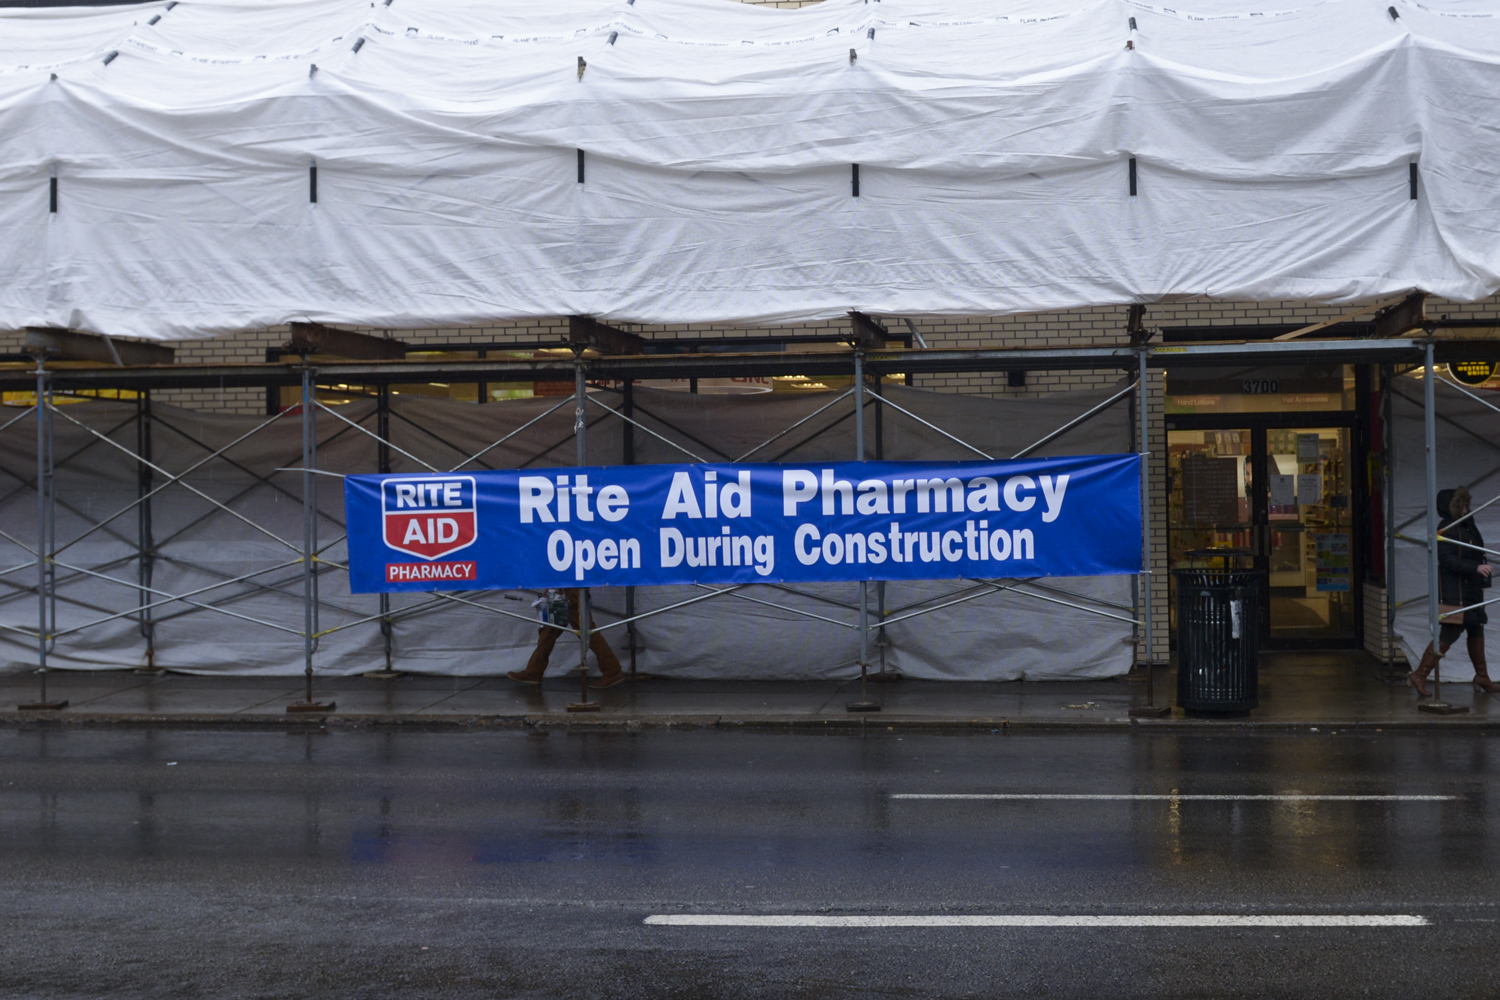 Rite Aid has two entrances — one on Forbes and one on Atwood.